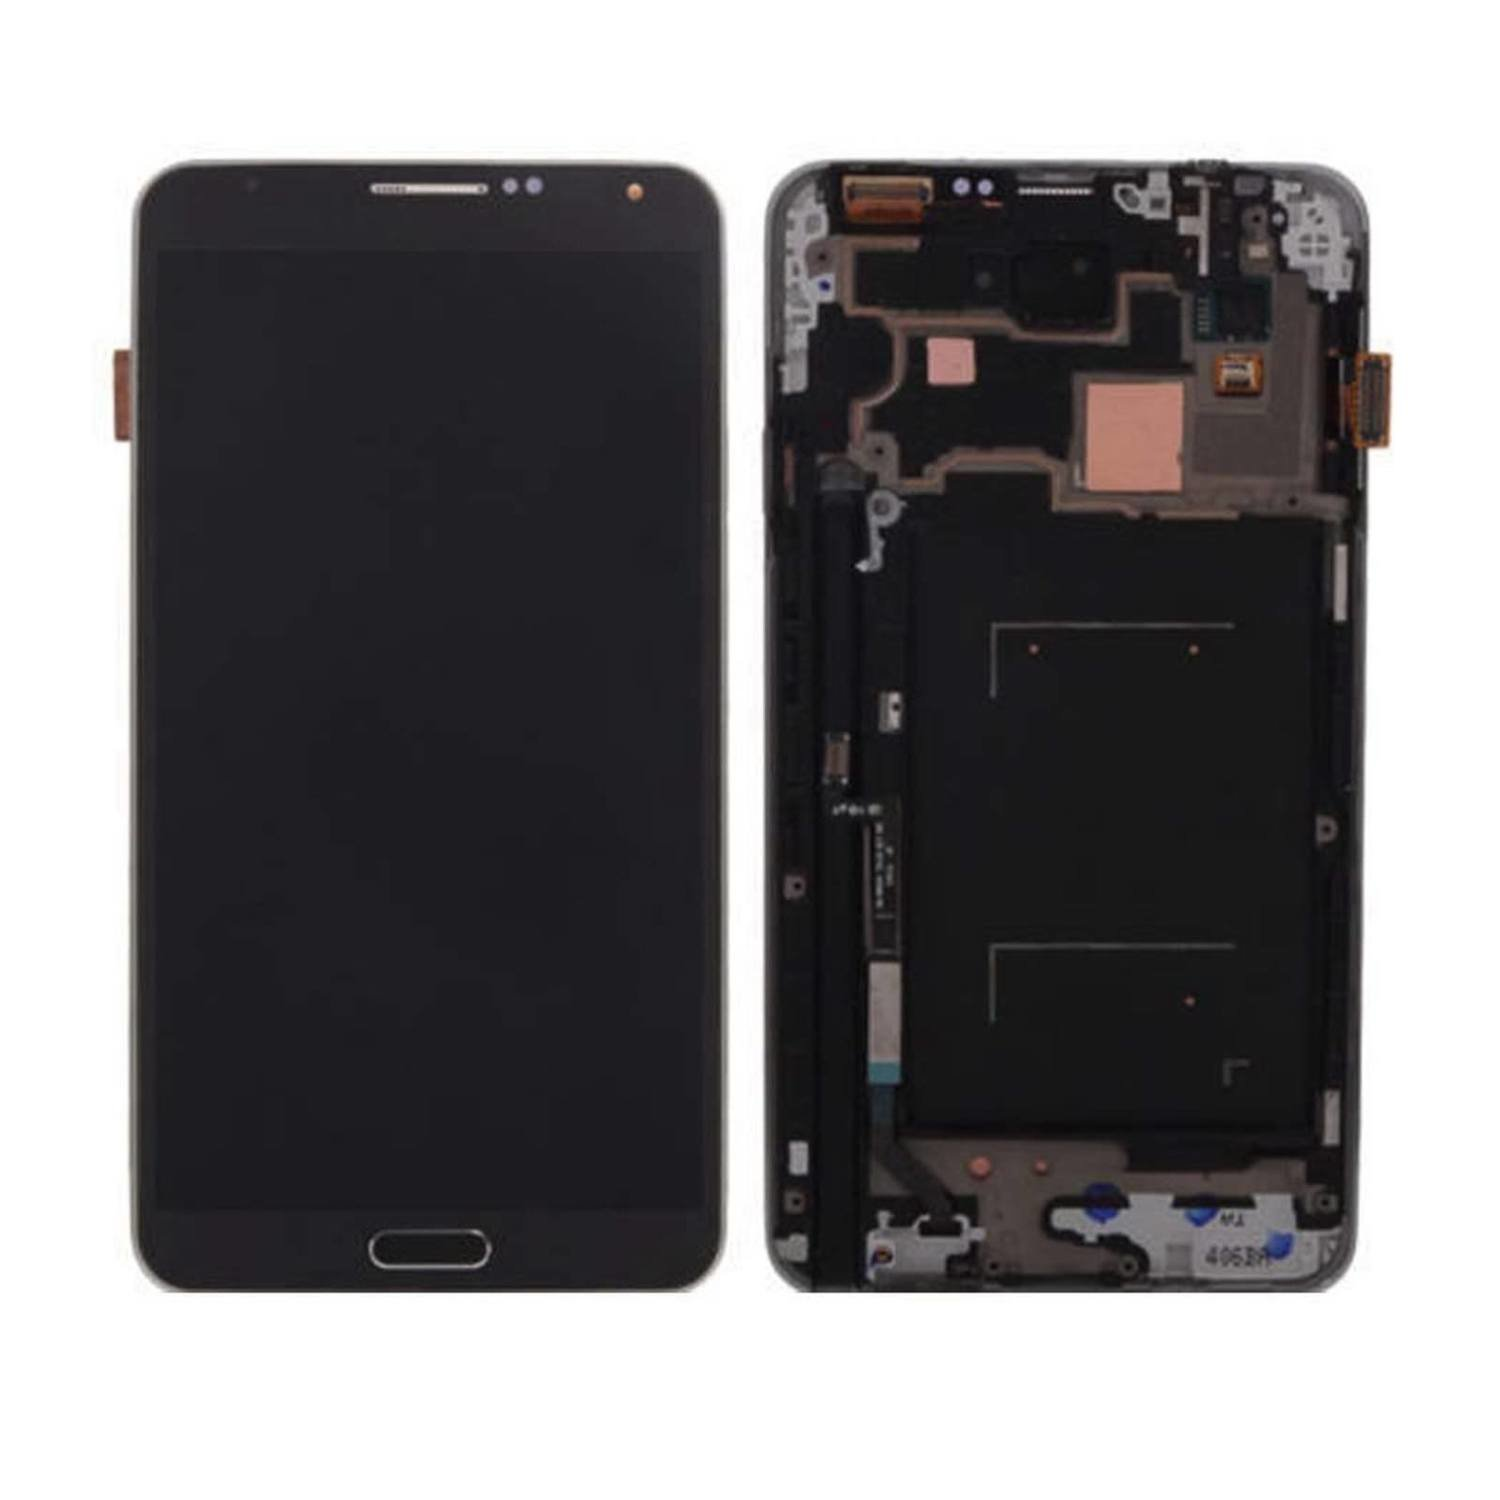 Samsung Galaxy Note 3 Screen Replacement - Black